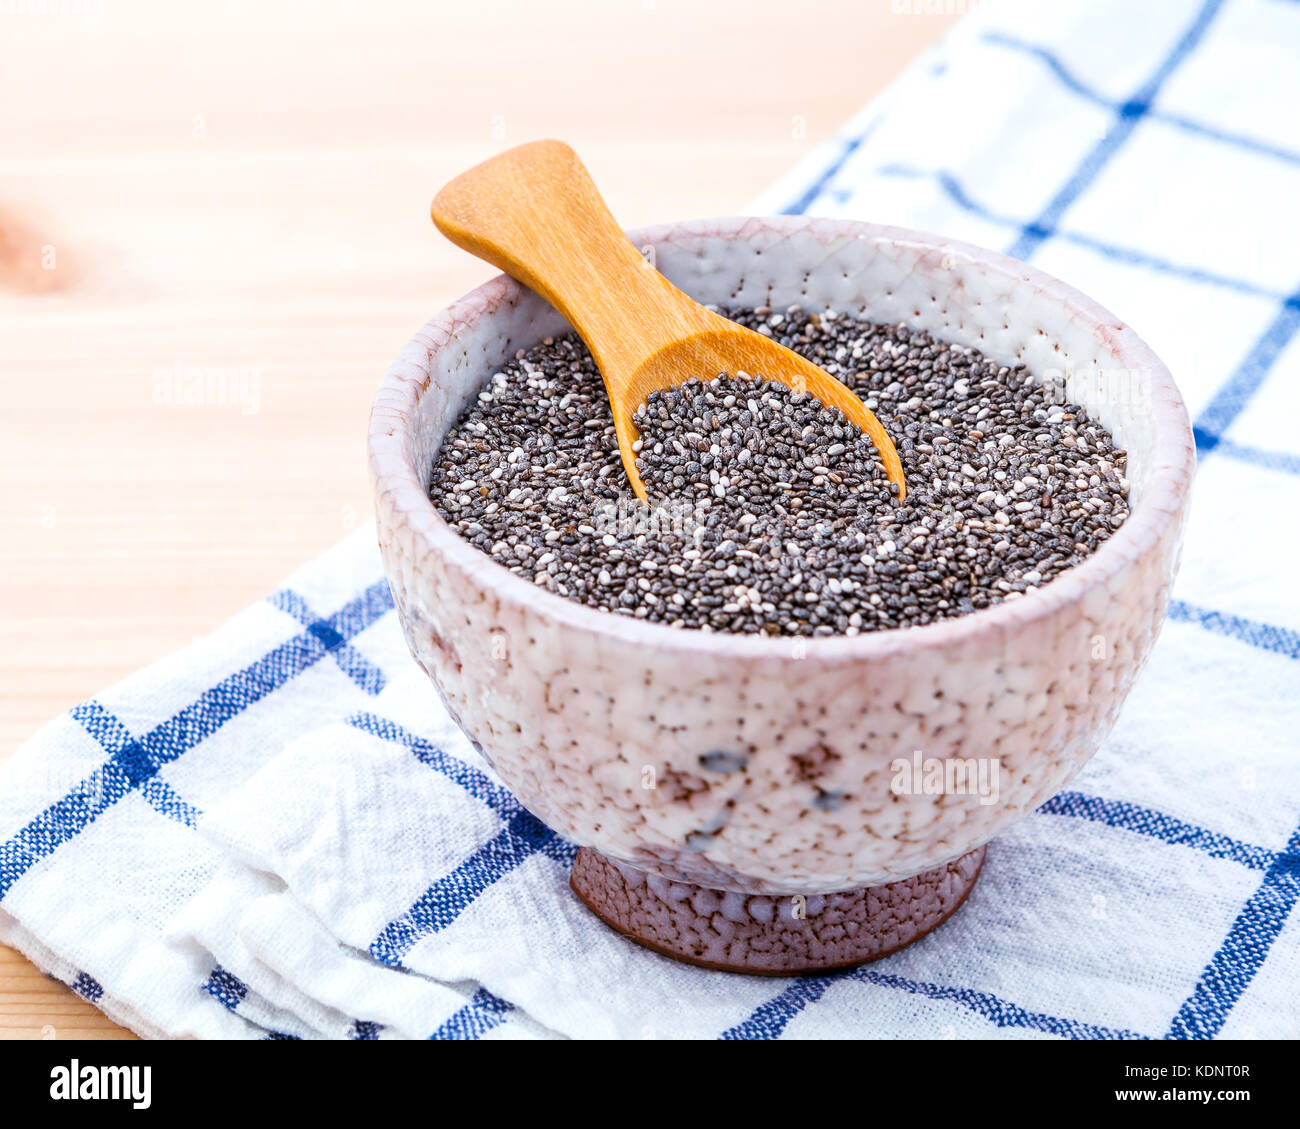 Nutritious chia seeds in ceramic bowl on wooden table for diet foods ingredients . Nutritious Foods and Super foods - Stock Image